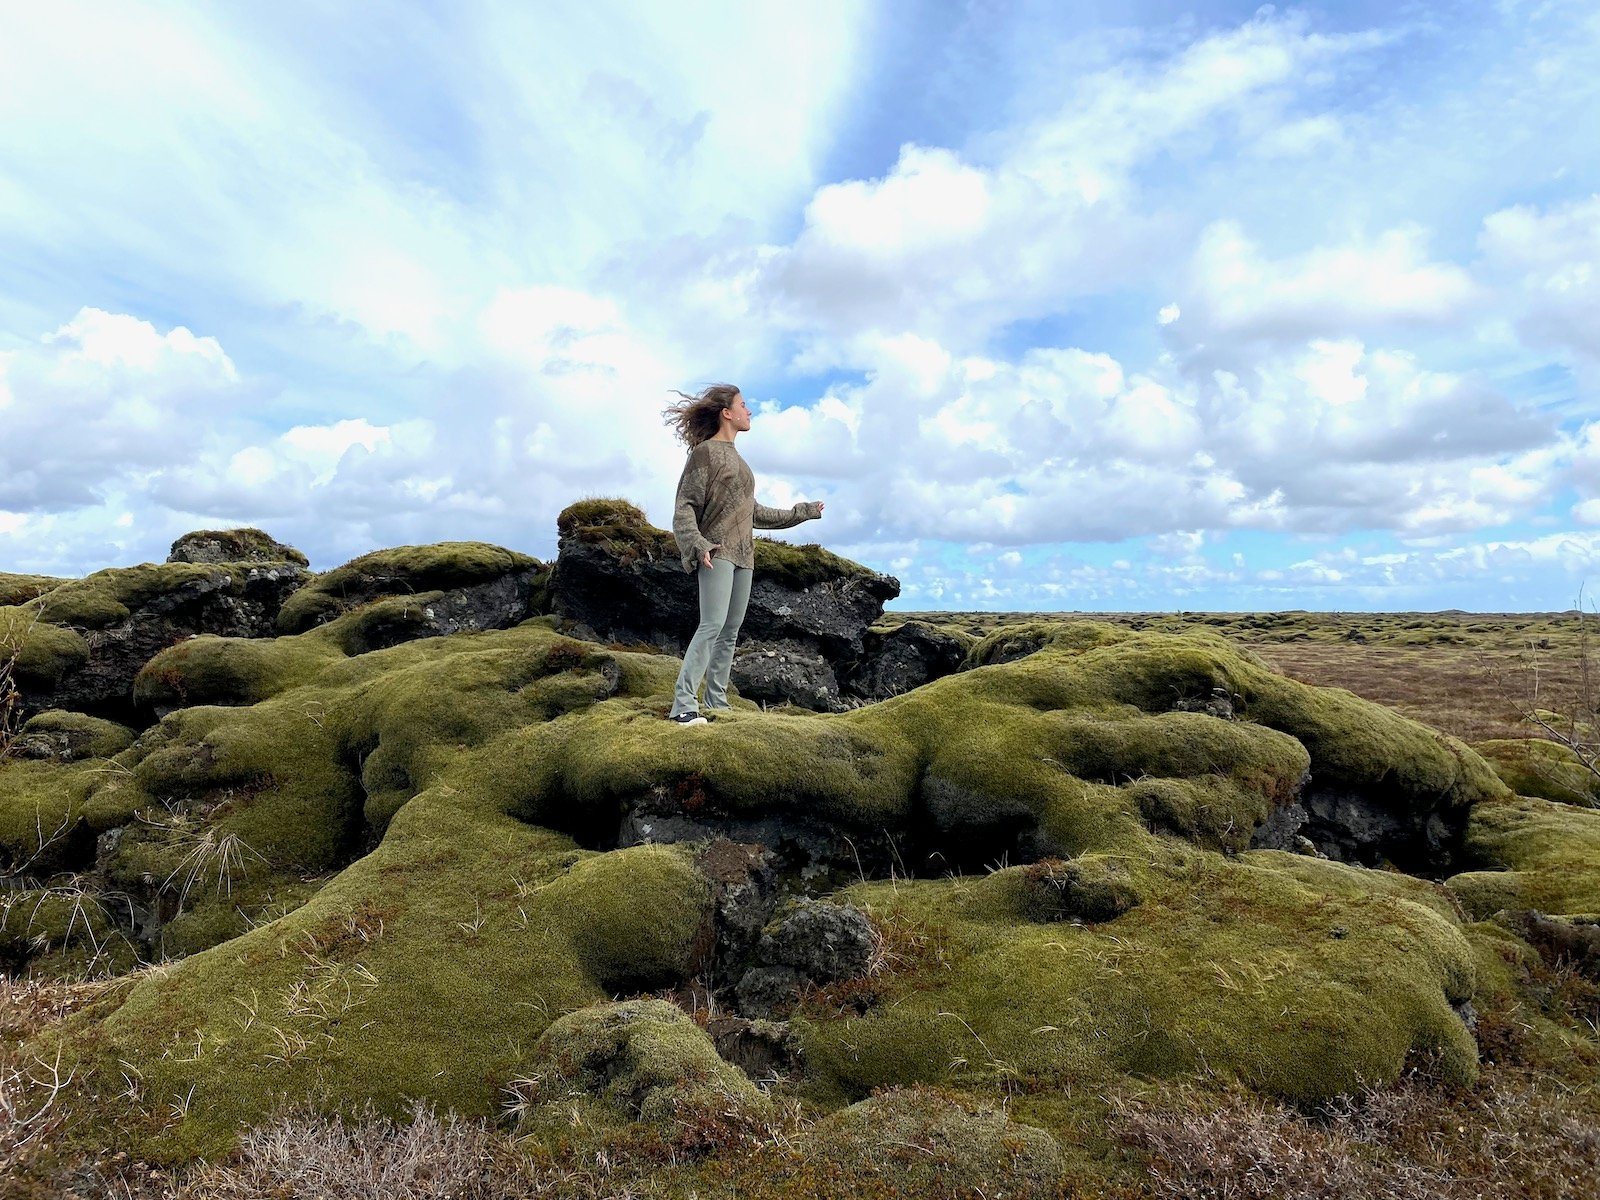 Teen girl standing on moss covered mounds in Iceland.